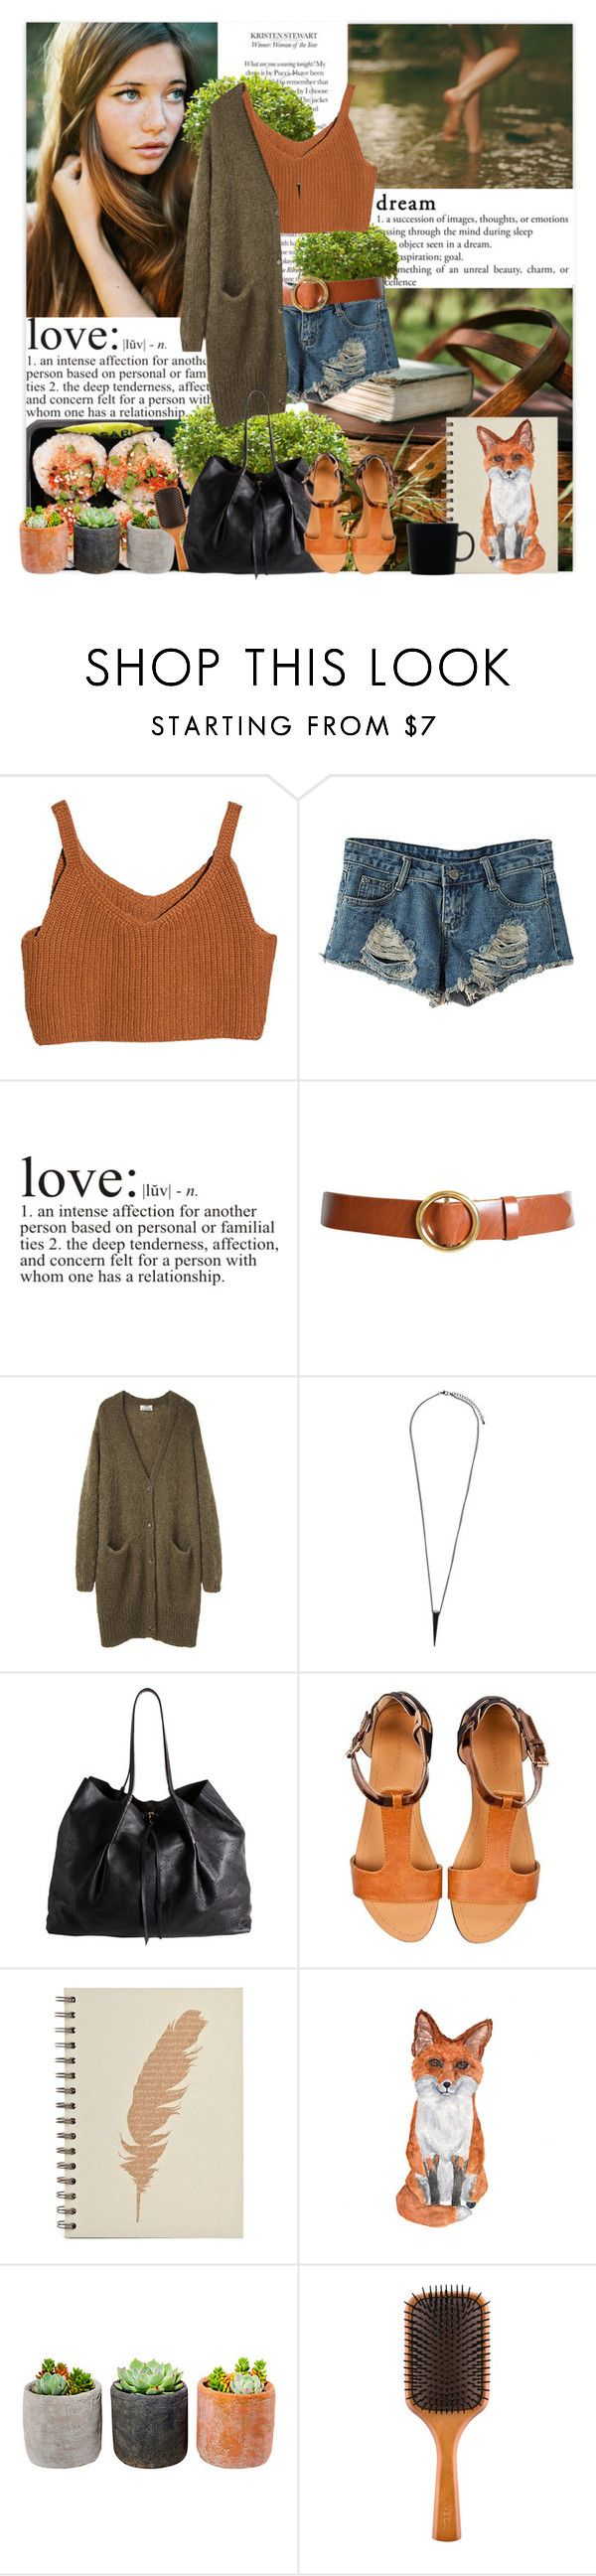 """""""M comme Mode de vie !!! 17"""" by vicky-soleil ❤ liked on Polyvore featuring Frame Denim, Acne Studios, Pieces, Nina Ricci, Shop Succulents, Aveda and iittala"""